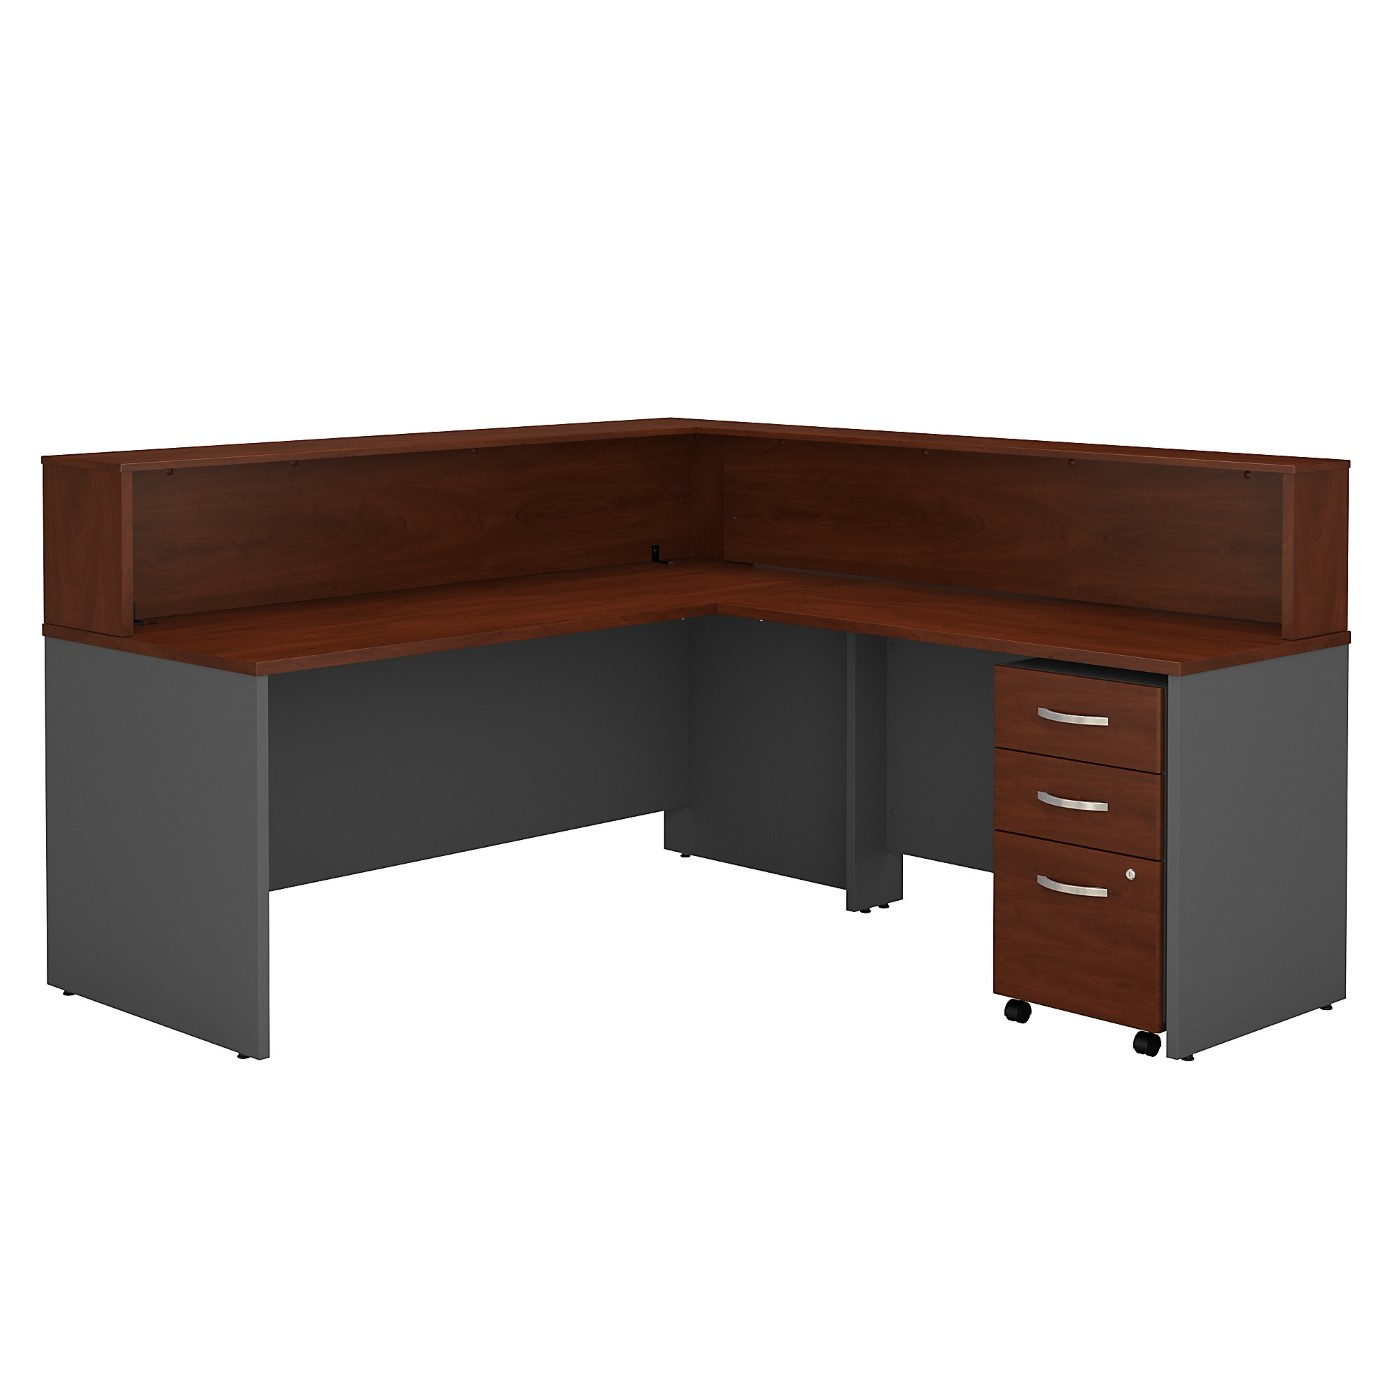 BUSH BUSINESS FURNITURE SERIES C L SHAPED RECEPTION DESK WITH MOBILE FILE CABINET. FREE SHIPPING